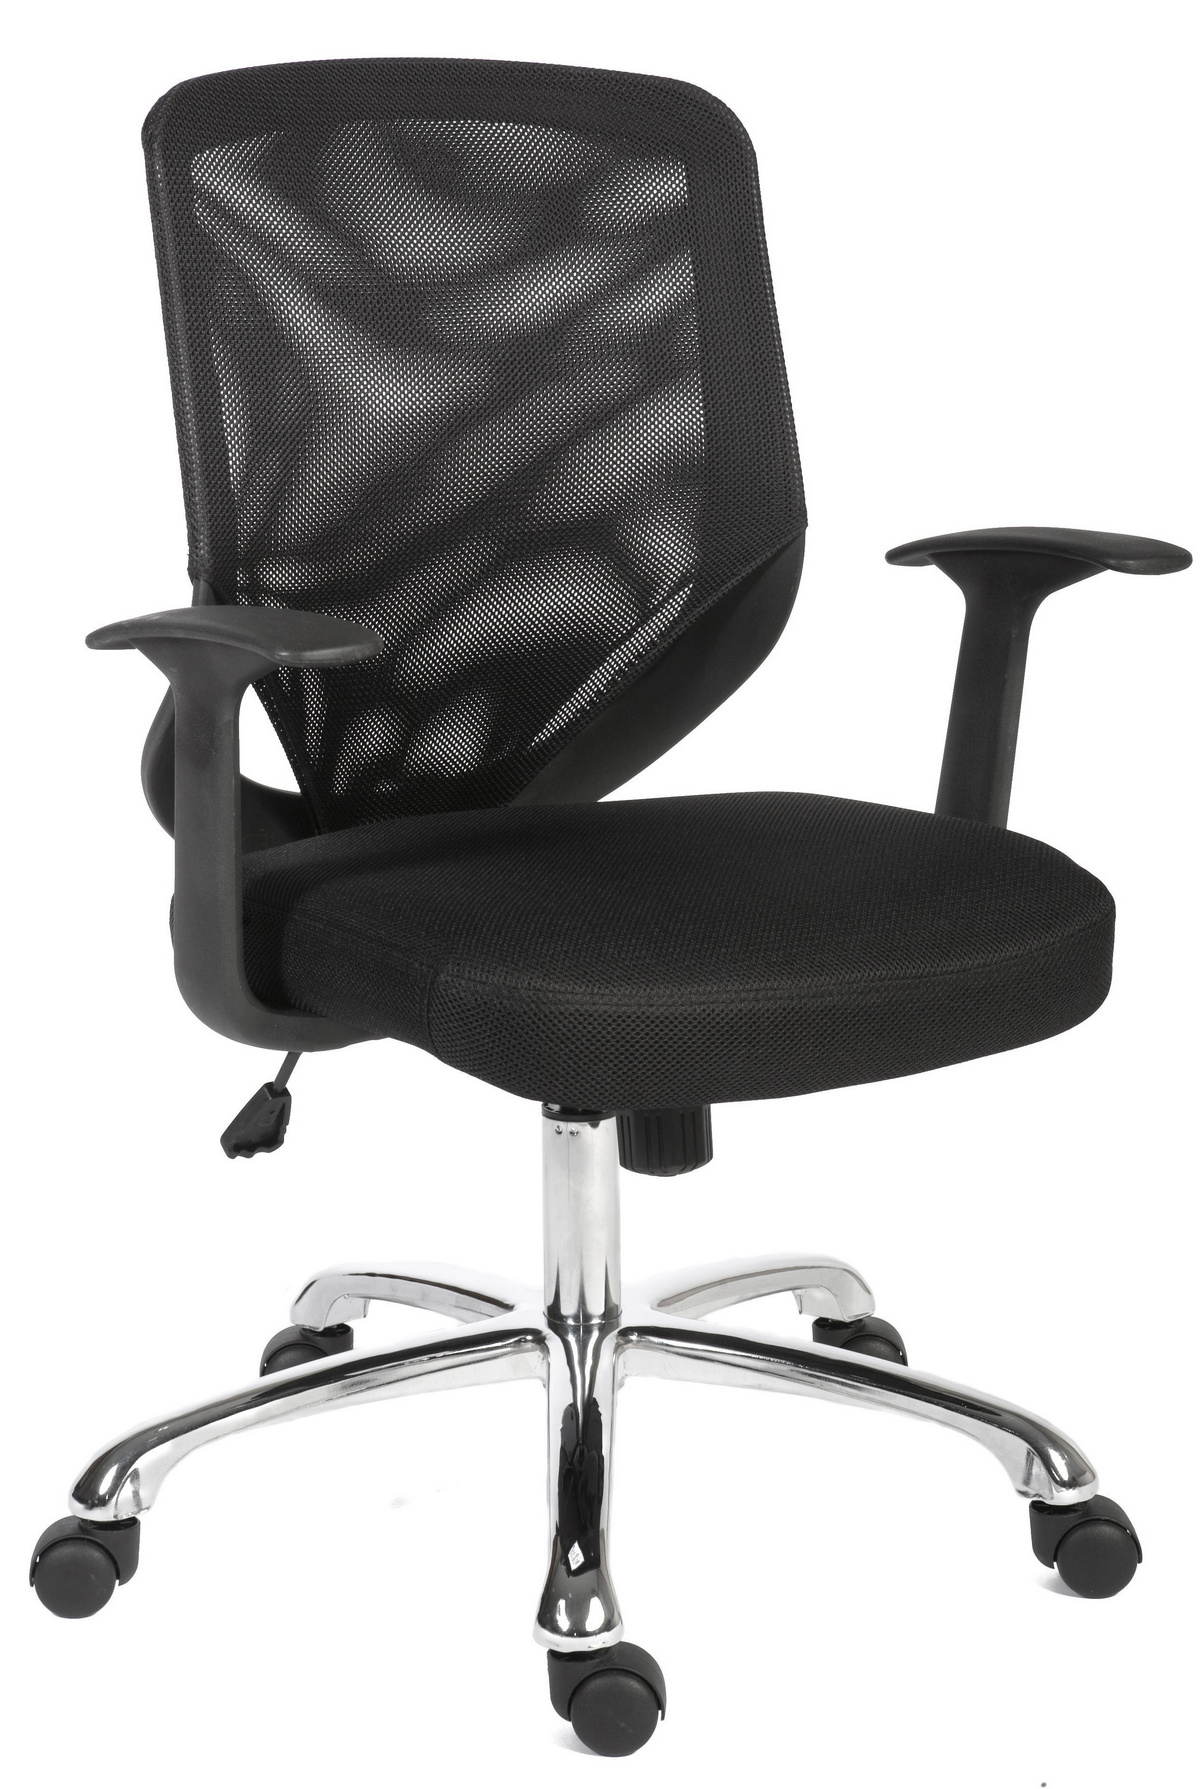 Ergonomic Chairs for fice Posture Chairs